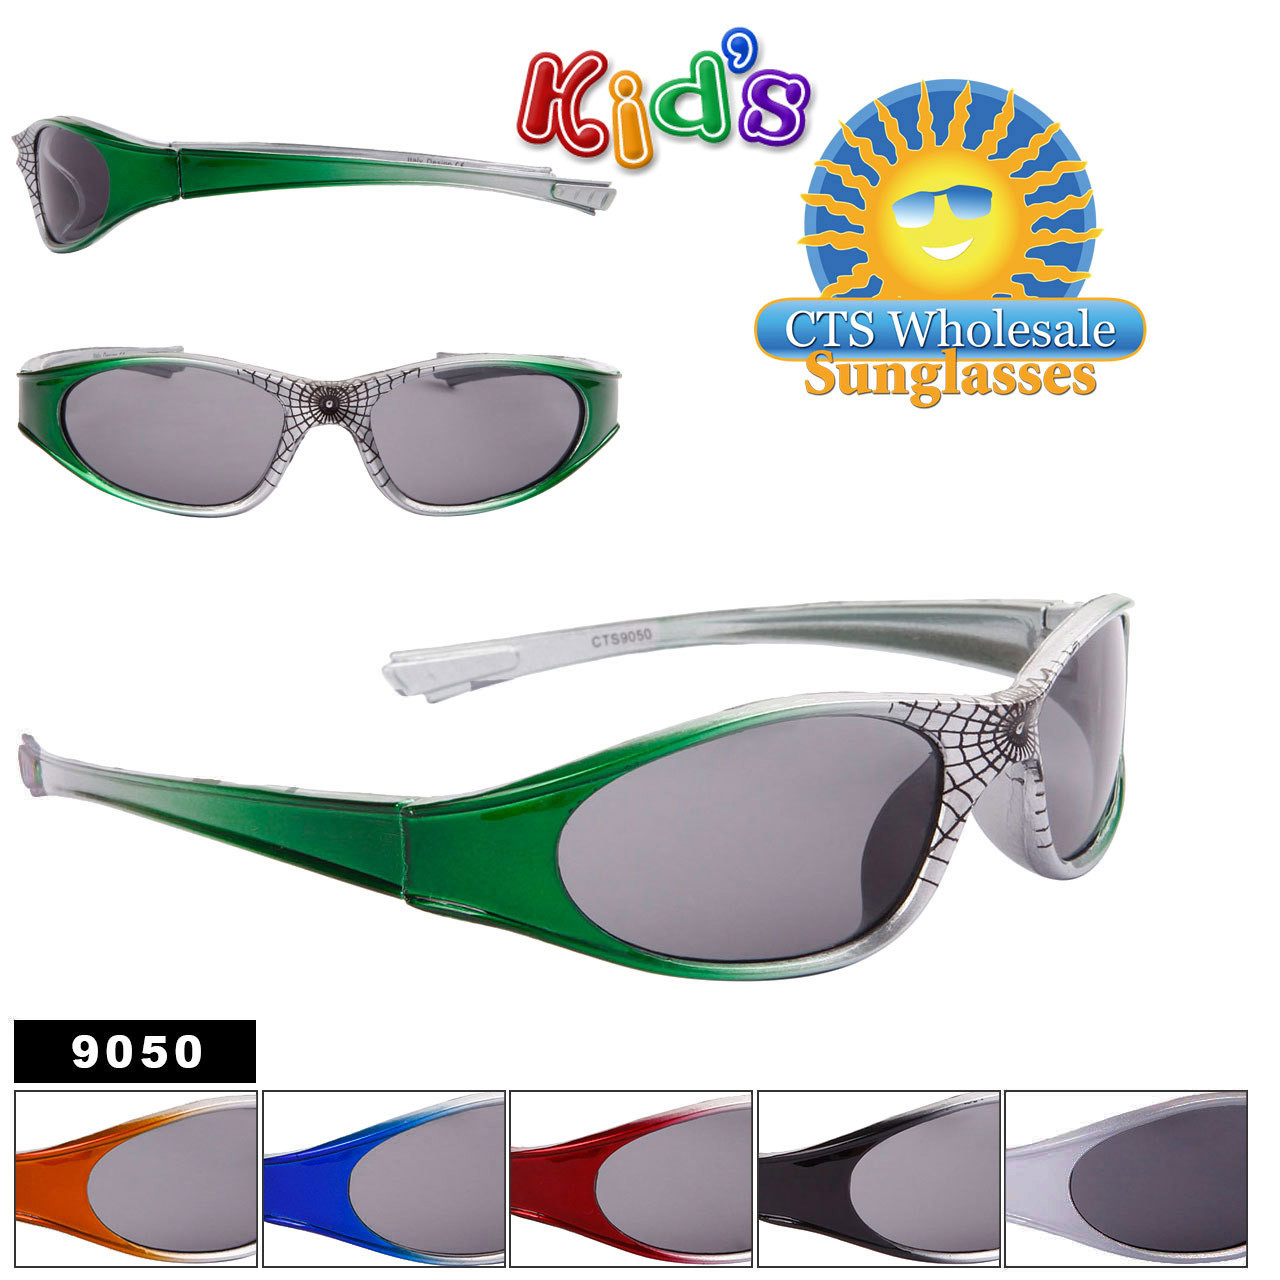 Spider Web Bulk Sunglasses For Kids